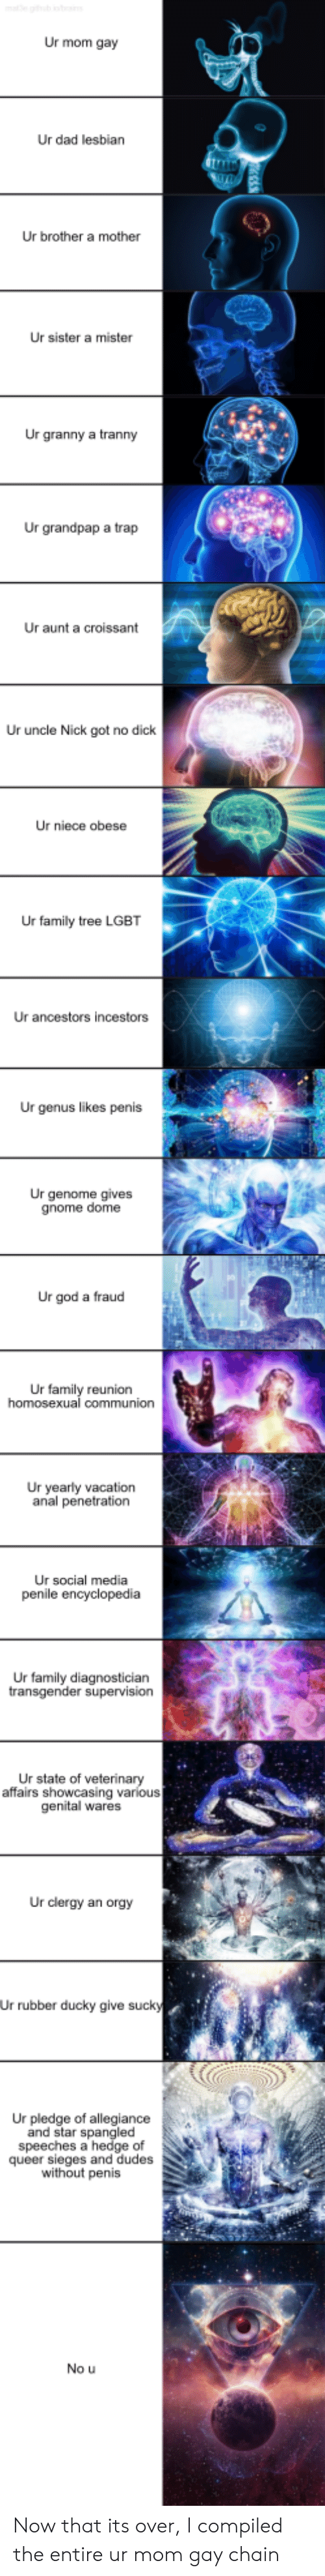 tranny: Ur mom gay  Ur dad lesbian  Ur brother a mother  Ur sister a mister  Ur granny a tranny  Ur grandpap a trap  Ur aunt a croissant  Ur uncle Nick got no dick  Ur niece obese  Ur family tree LGBT  Ur ancestors incestors  Ur genus likes penis  Ur genome gives  gnome dome  Ur god a fraud  Ur family reunion  Ur yearly vacation  anal penetration  Ur social media  Ur family diagnosticiarn  Ur state of veterinary  affairs showcasing various  genital wares  Ur clergy an orgy  Ur rubber ducky give suck  Ur pledge of allegiance  and star spangle  speeches a hedge of  queer sieges and dudes  without penis  No u Now that its over, I compiled the entire ur mom gay chain